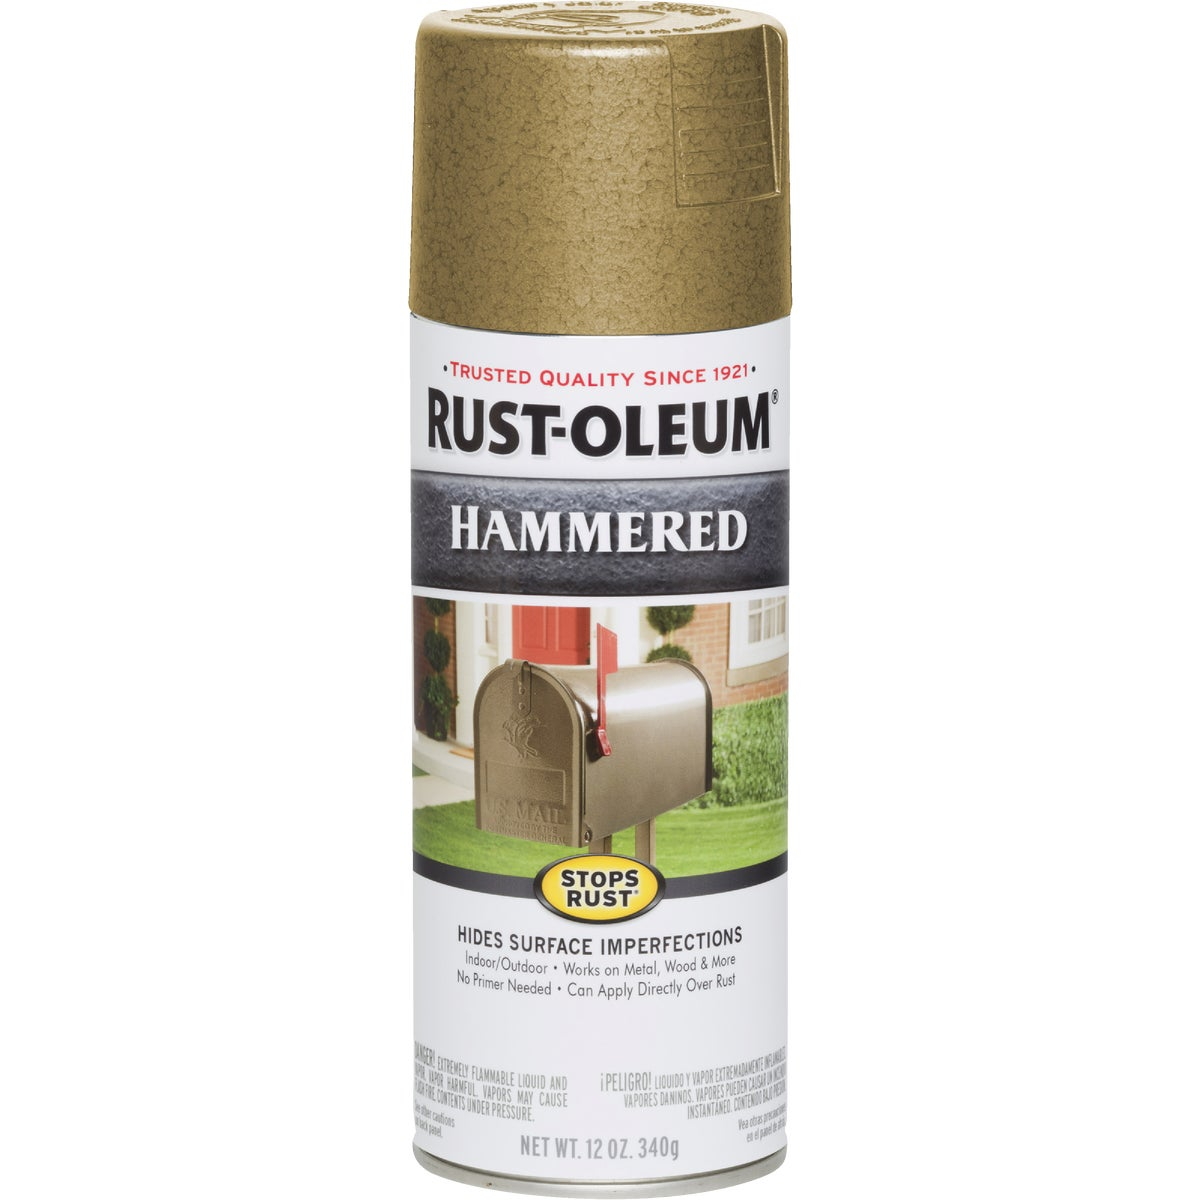 Item 780896, Now you can paint right over rust to get a distinctive hammered metal appearance with the same great rust-preventative qualities as the Stops Rust finishes.